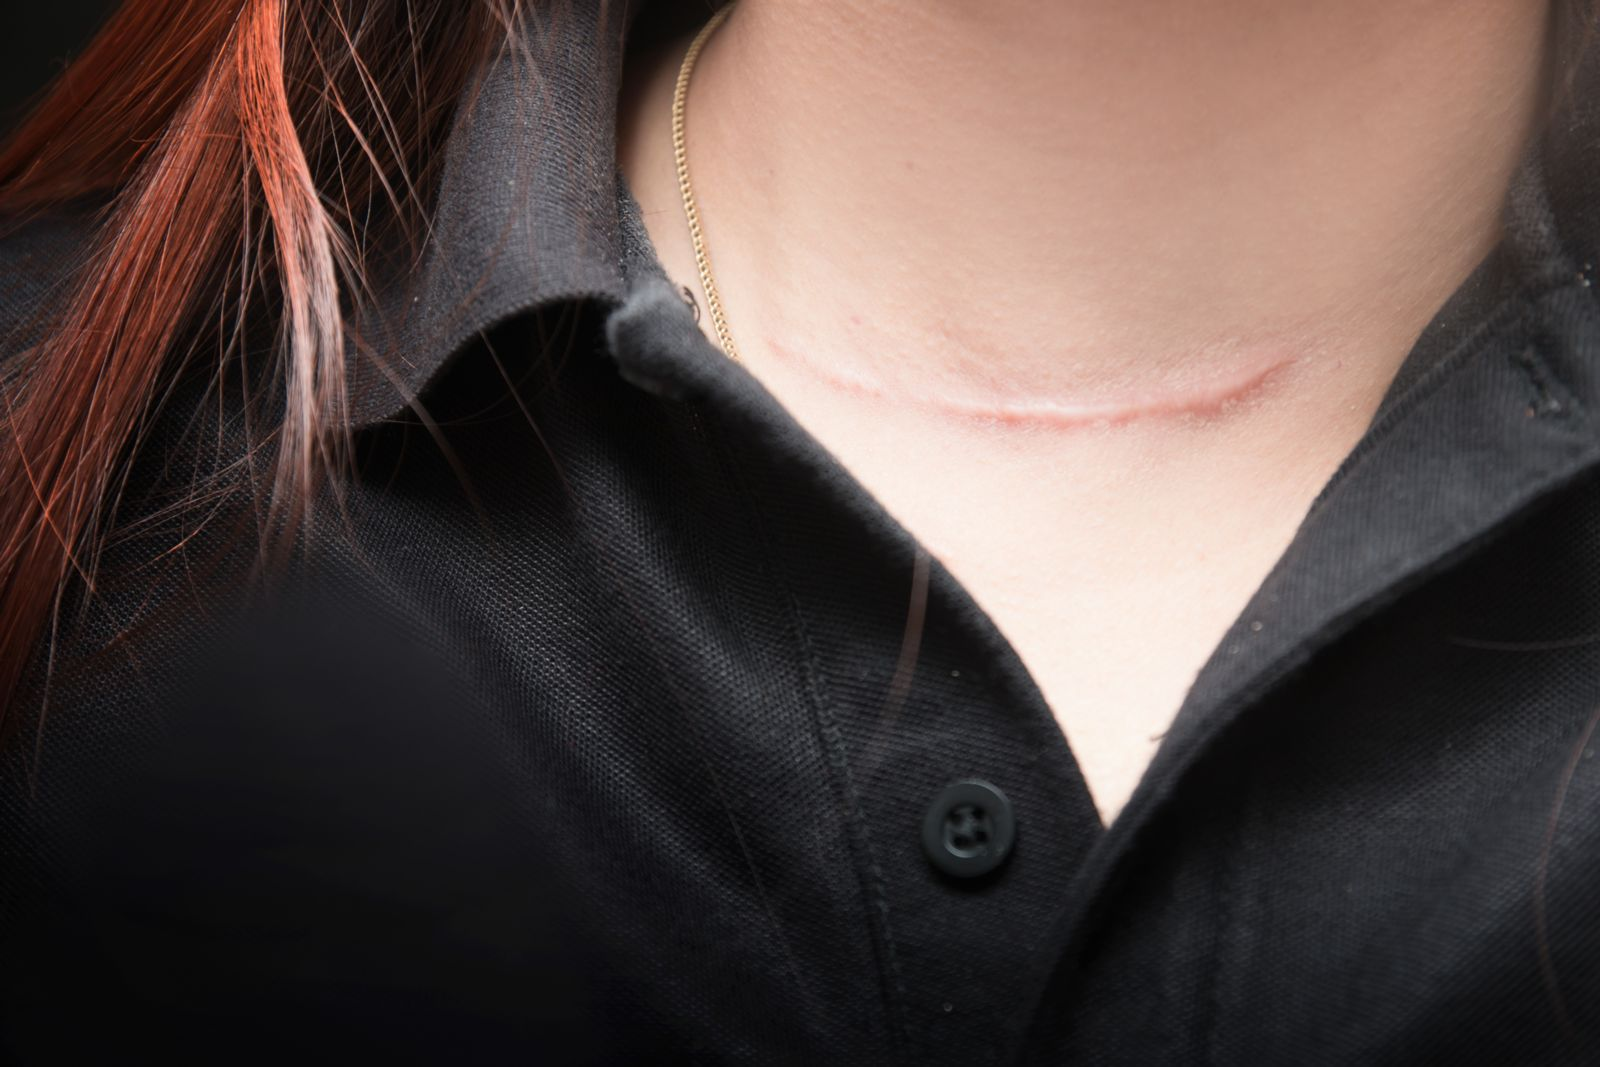 Woman's Neck With Scar